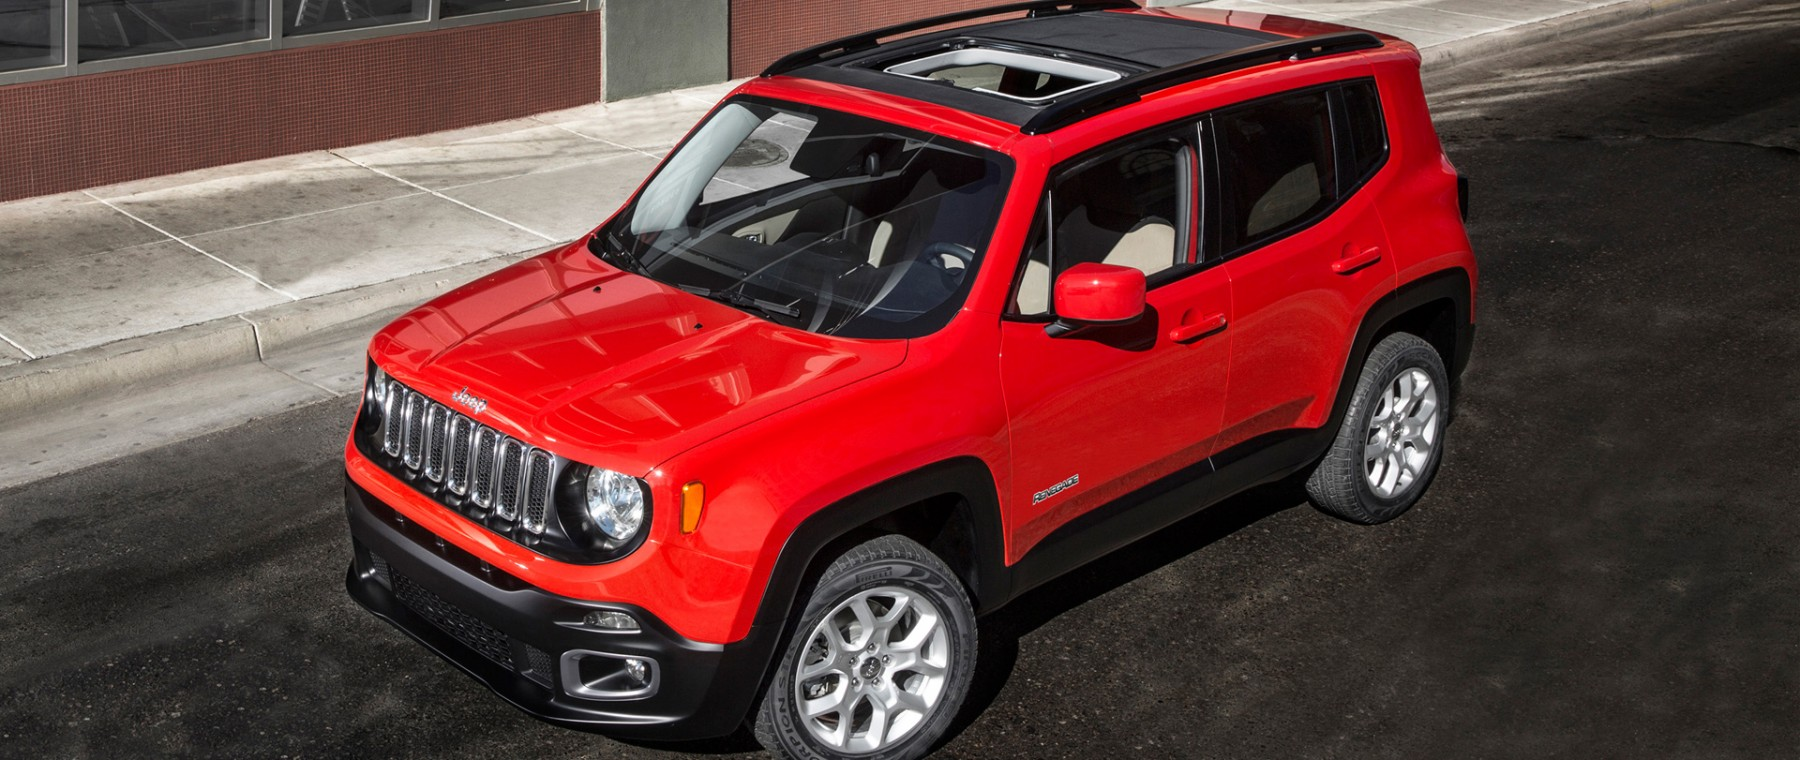 2015_jeep_renegade_3_1920x1080